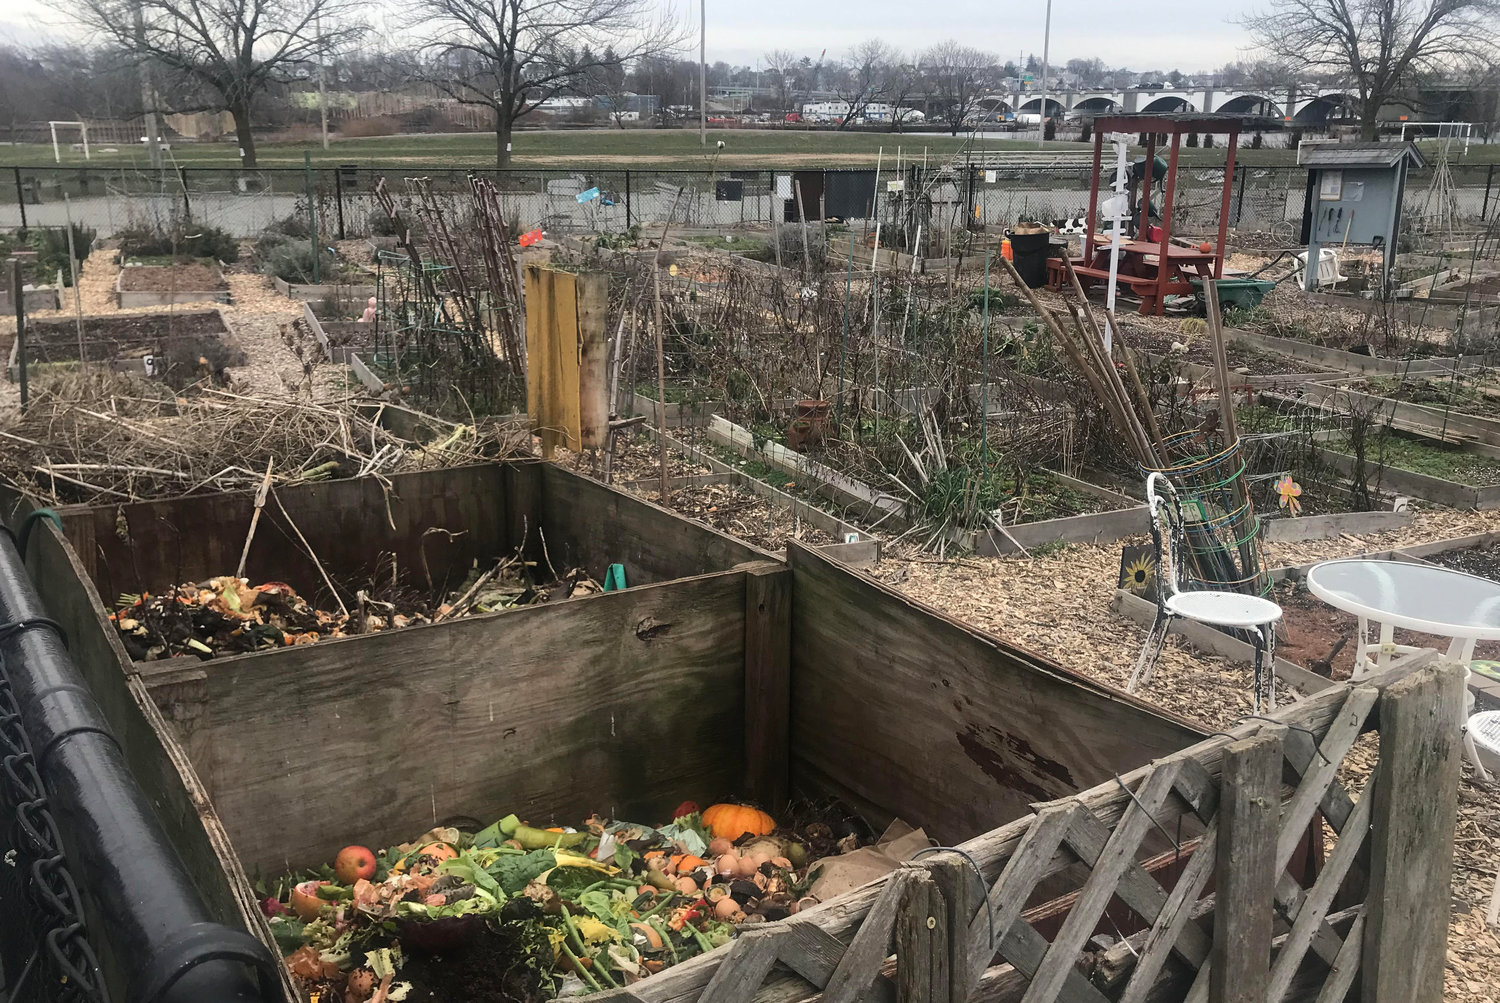 Nonprofit group Harvest Cycle has proposed an updated composting system for the East Side